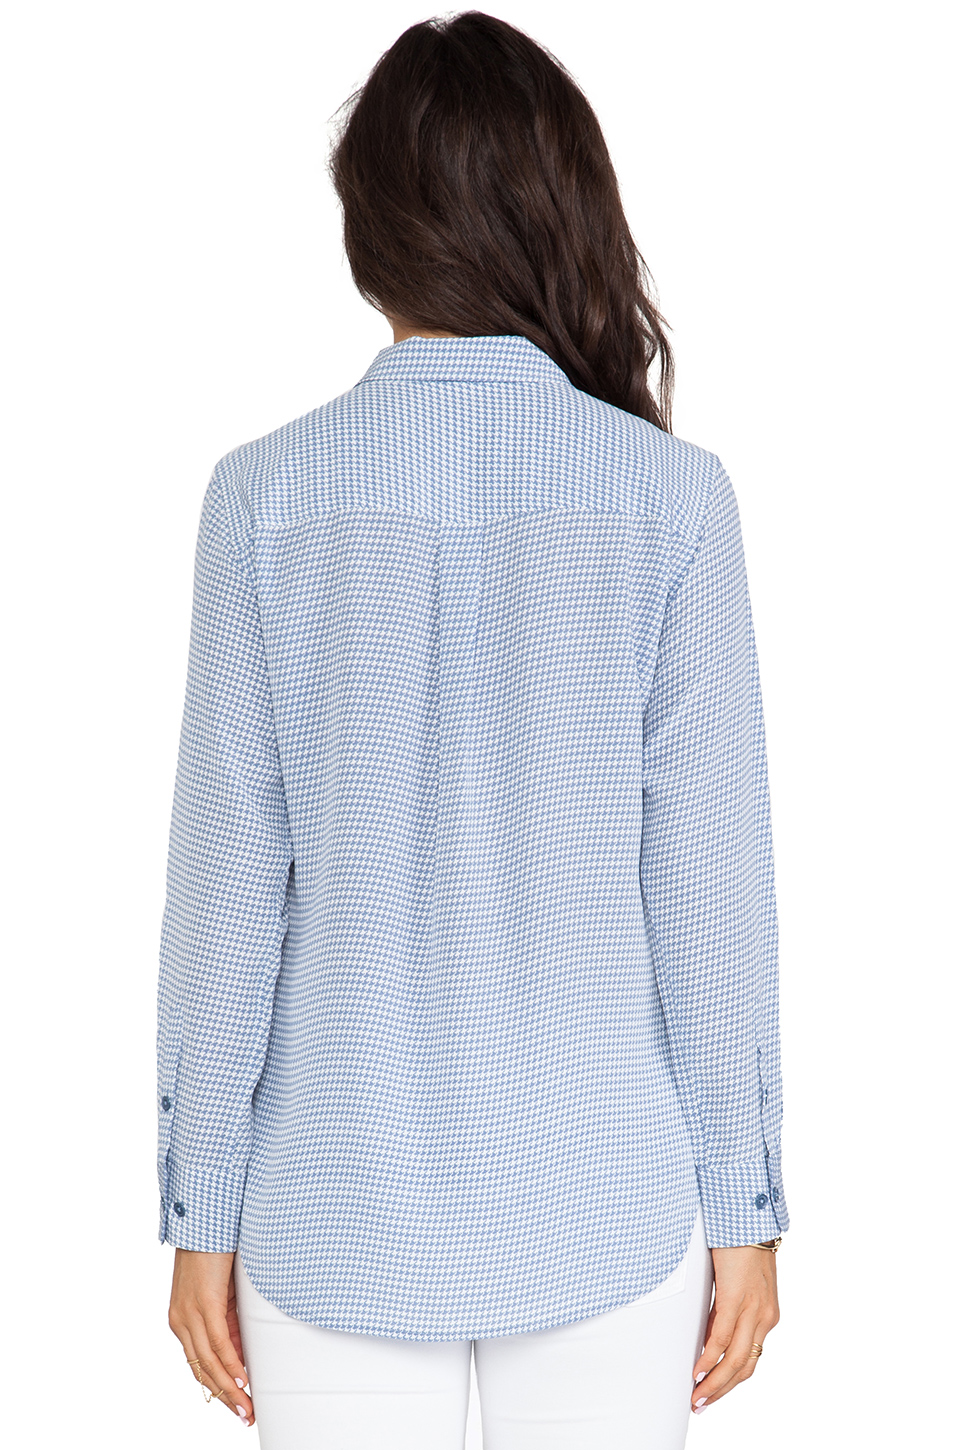 Equipment Slim Signature Archive Absoulte Houndstooth Blouse in Blue Jean & Bright White from REVOLVEclothing.com